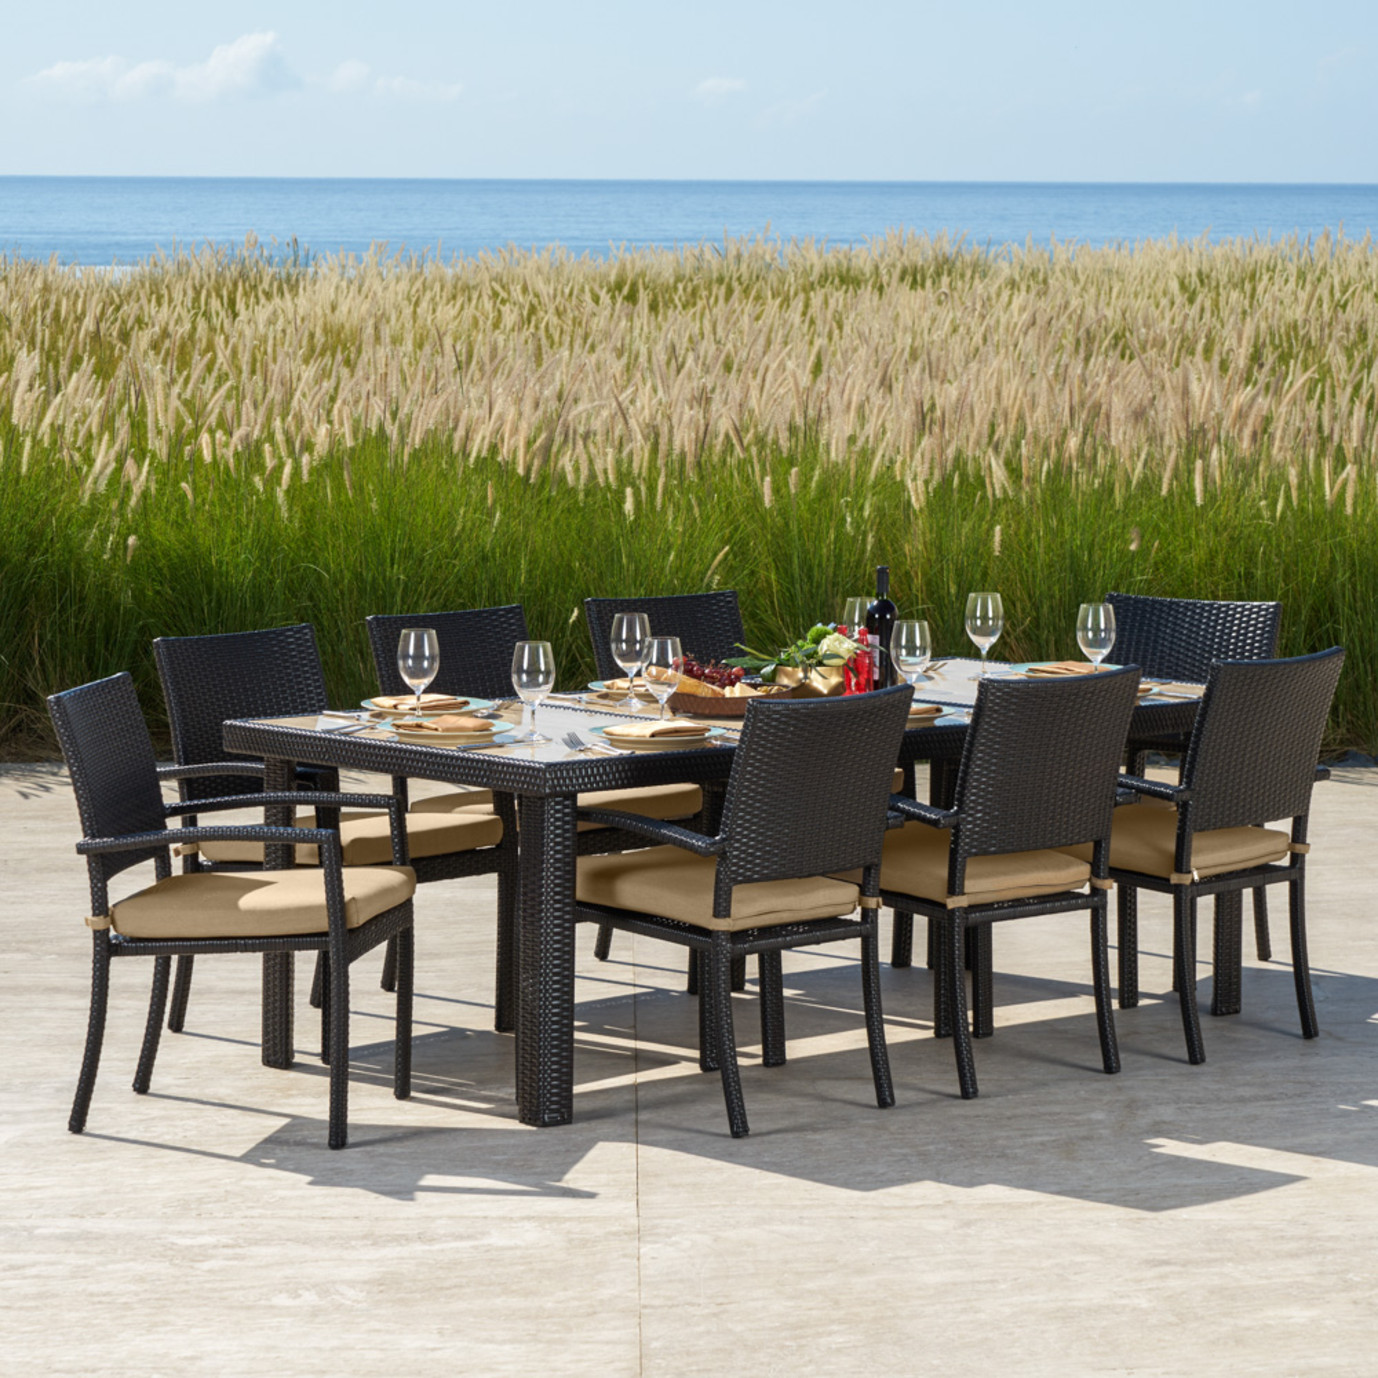 Portofino™ Comfort 9pc Dining Set - Heather Beige